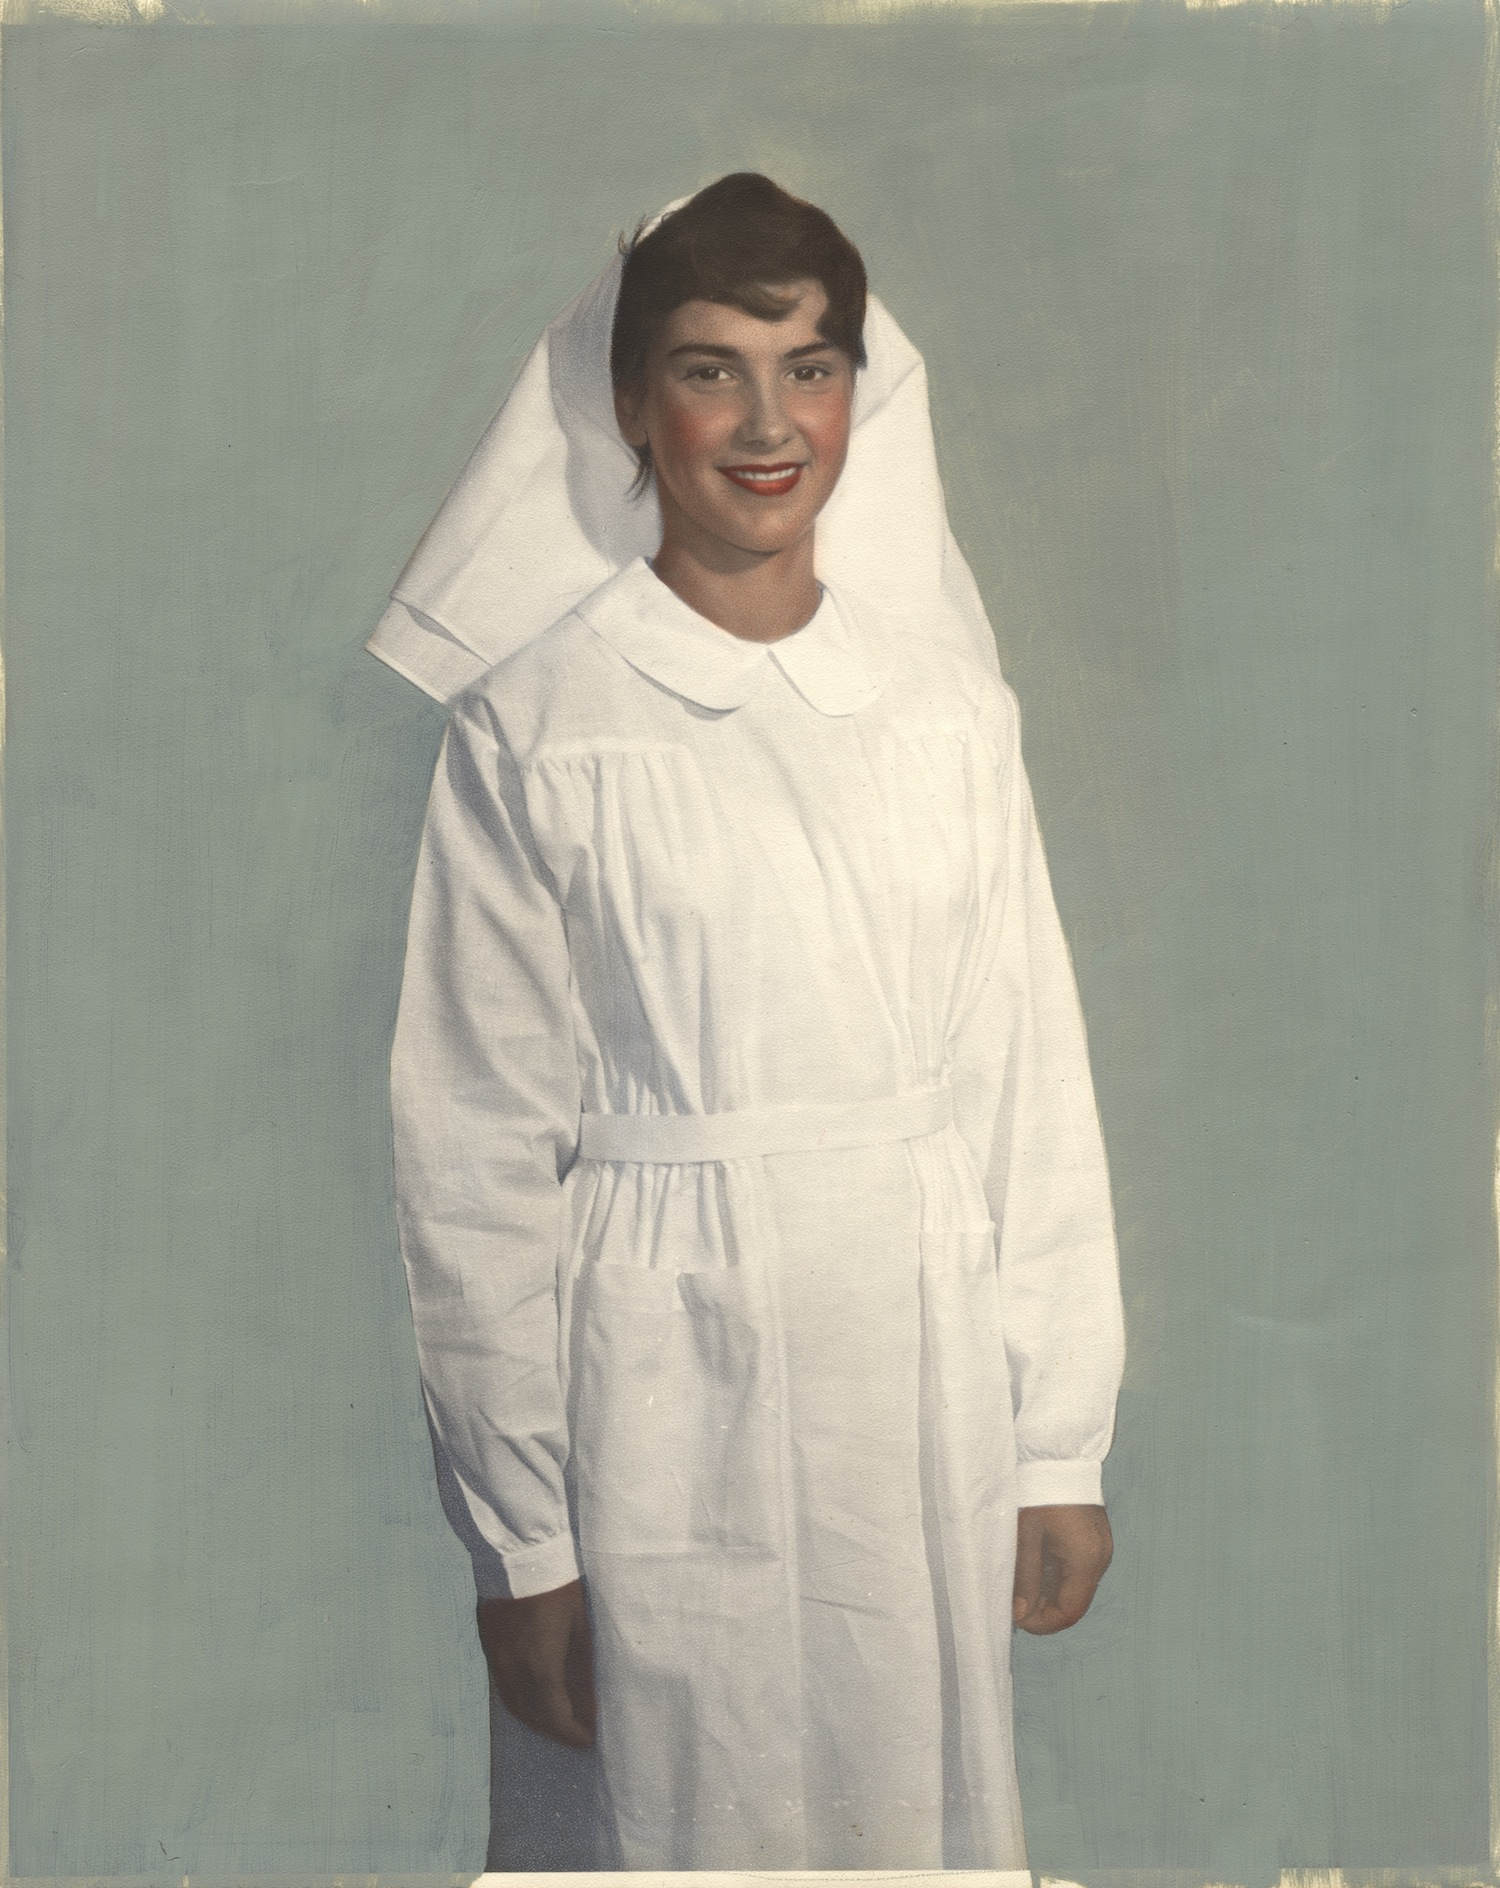 Nurse wearing uniform from France